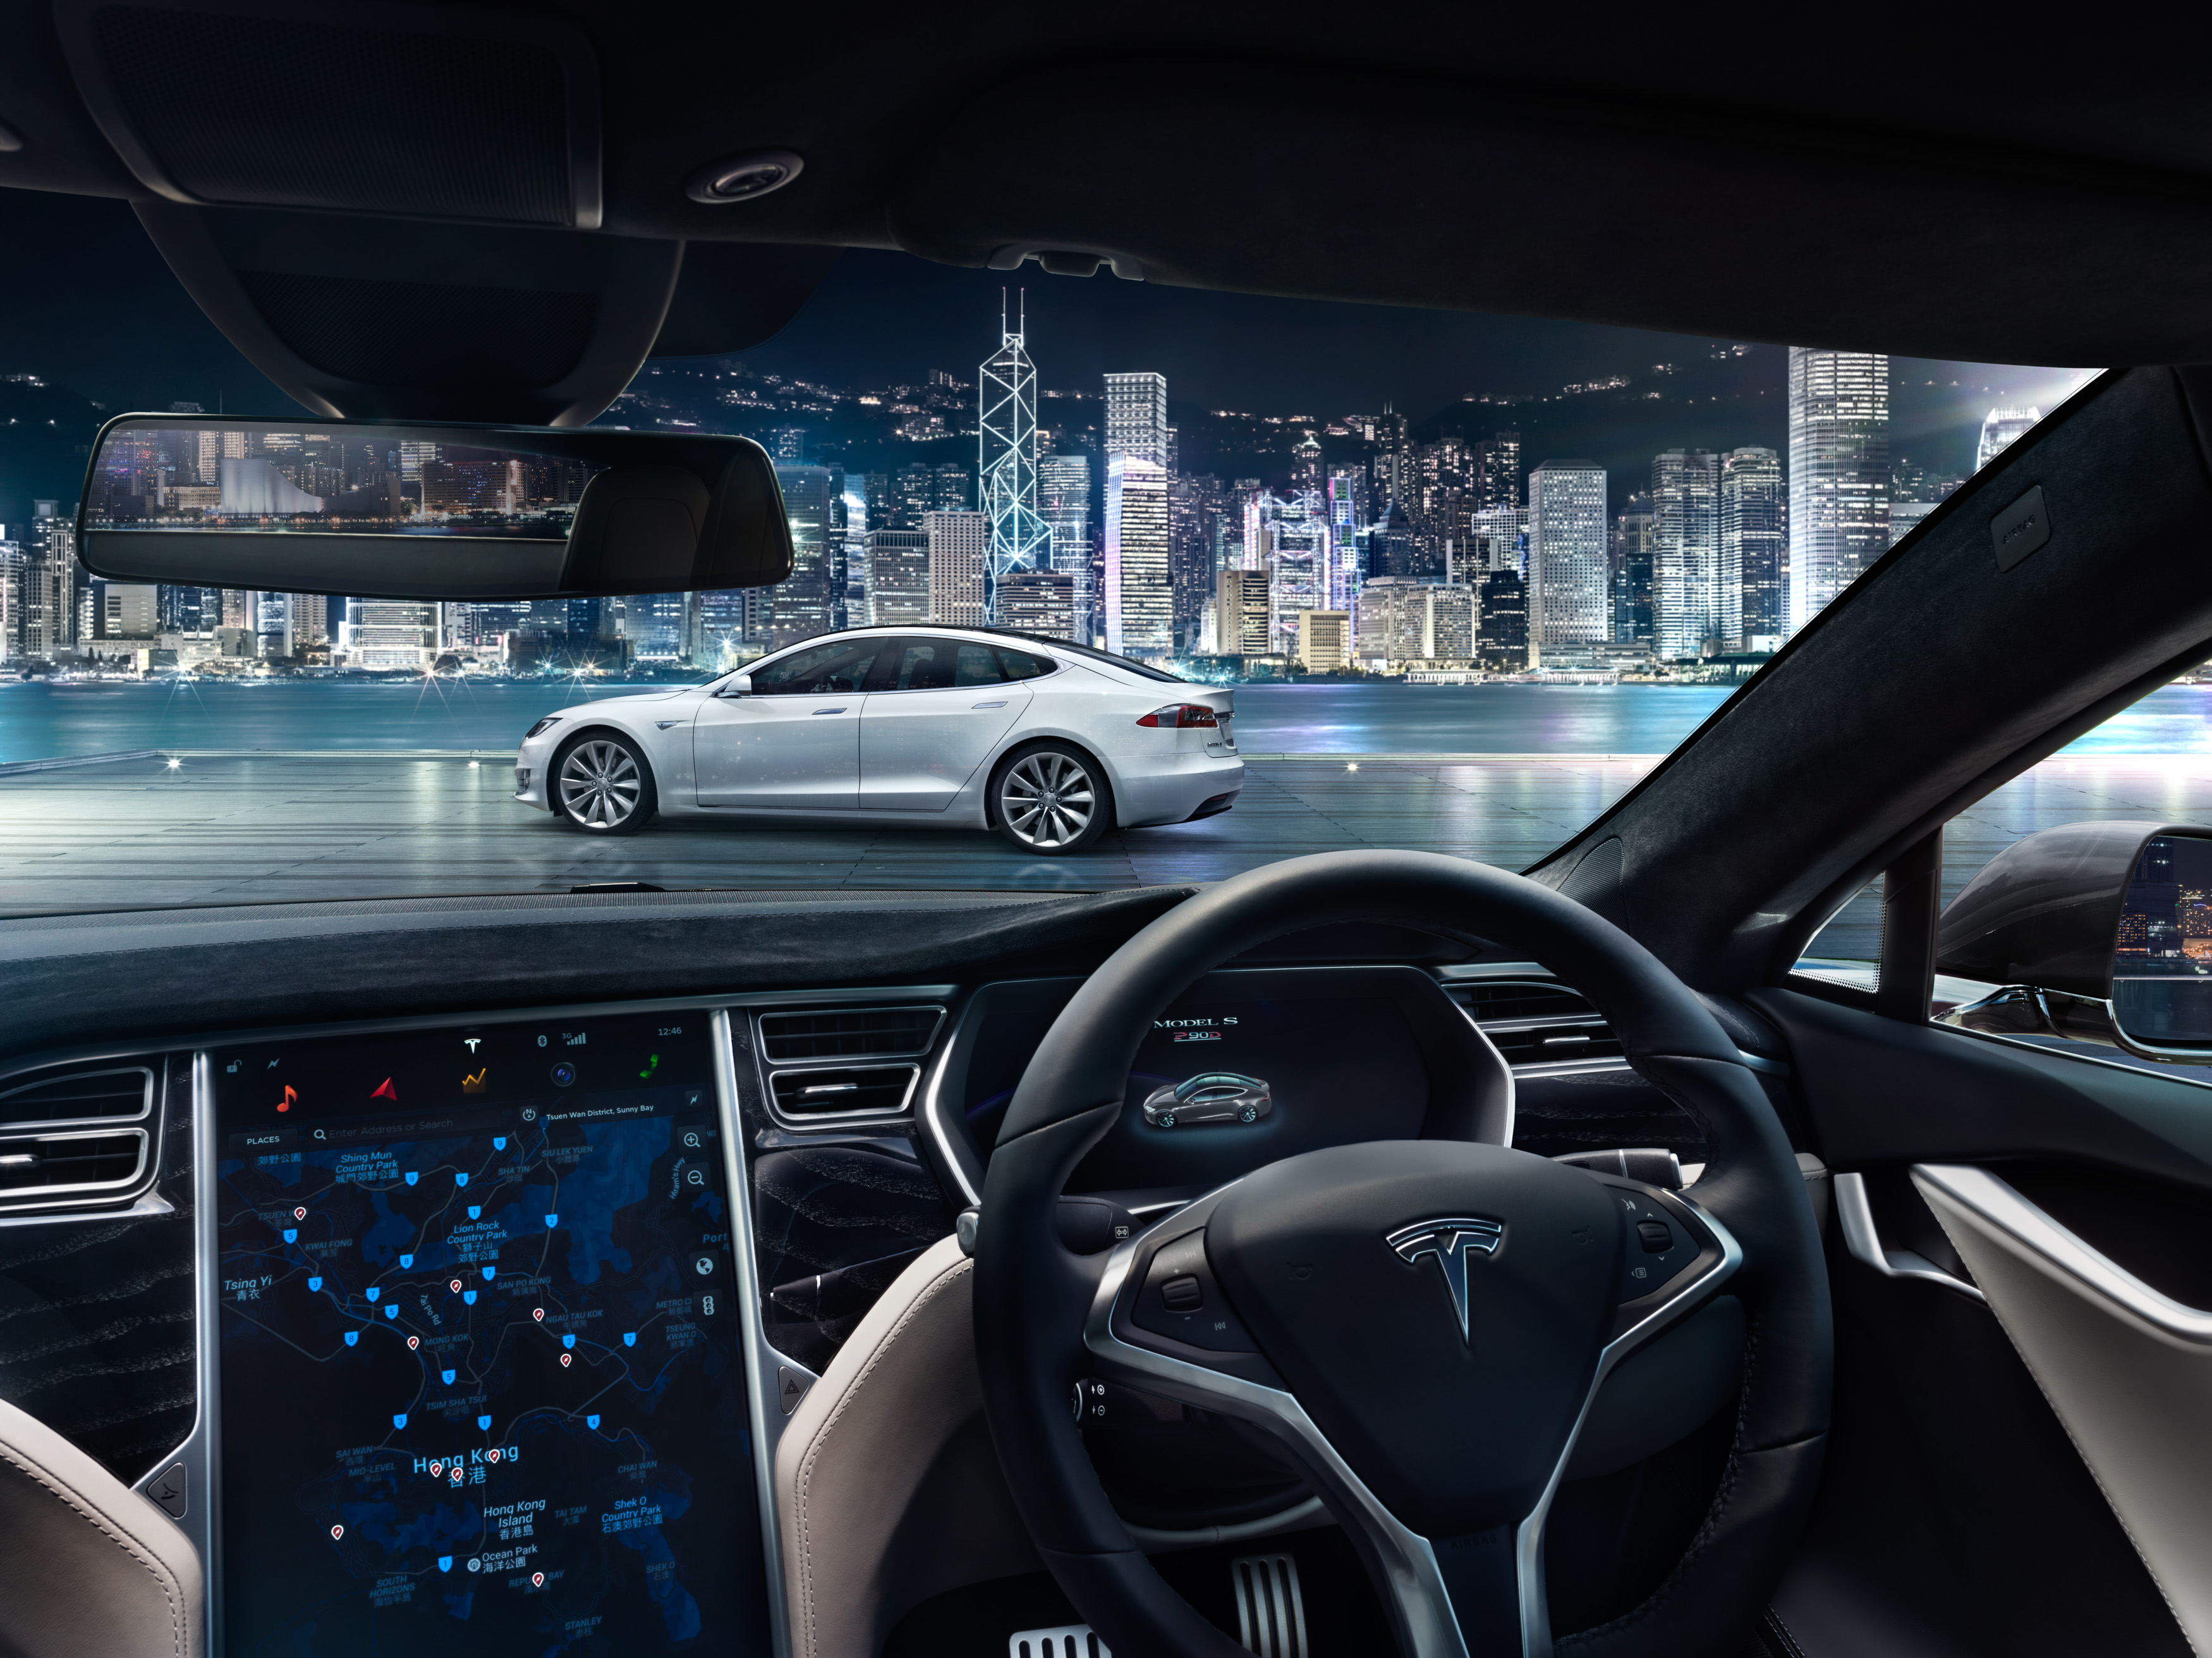 migs-foto-cgi-photographer-automotive-car-hong-kong-michael-lee-advtertising-commercial-photography-Tesla-Mosel-S-Refresh-Interior_v7_final